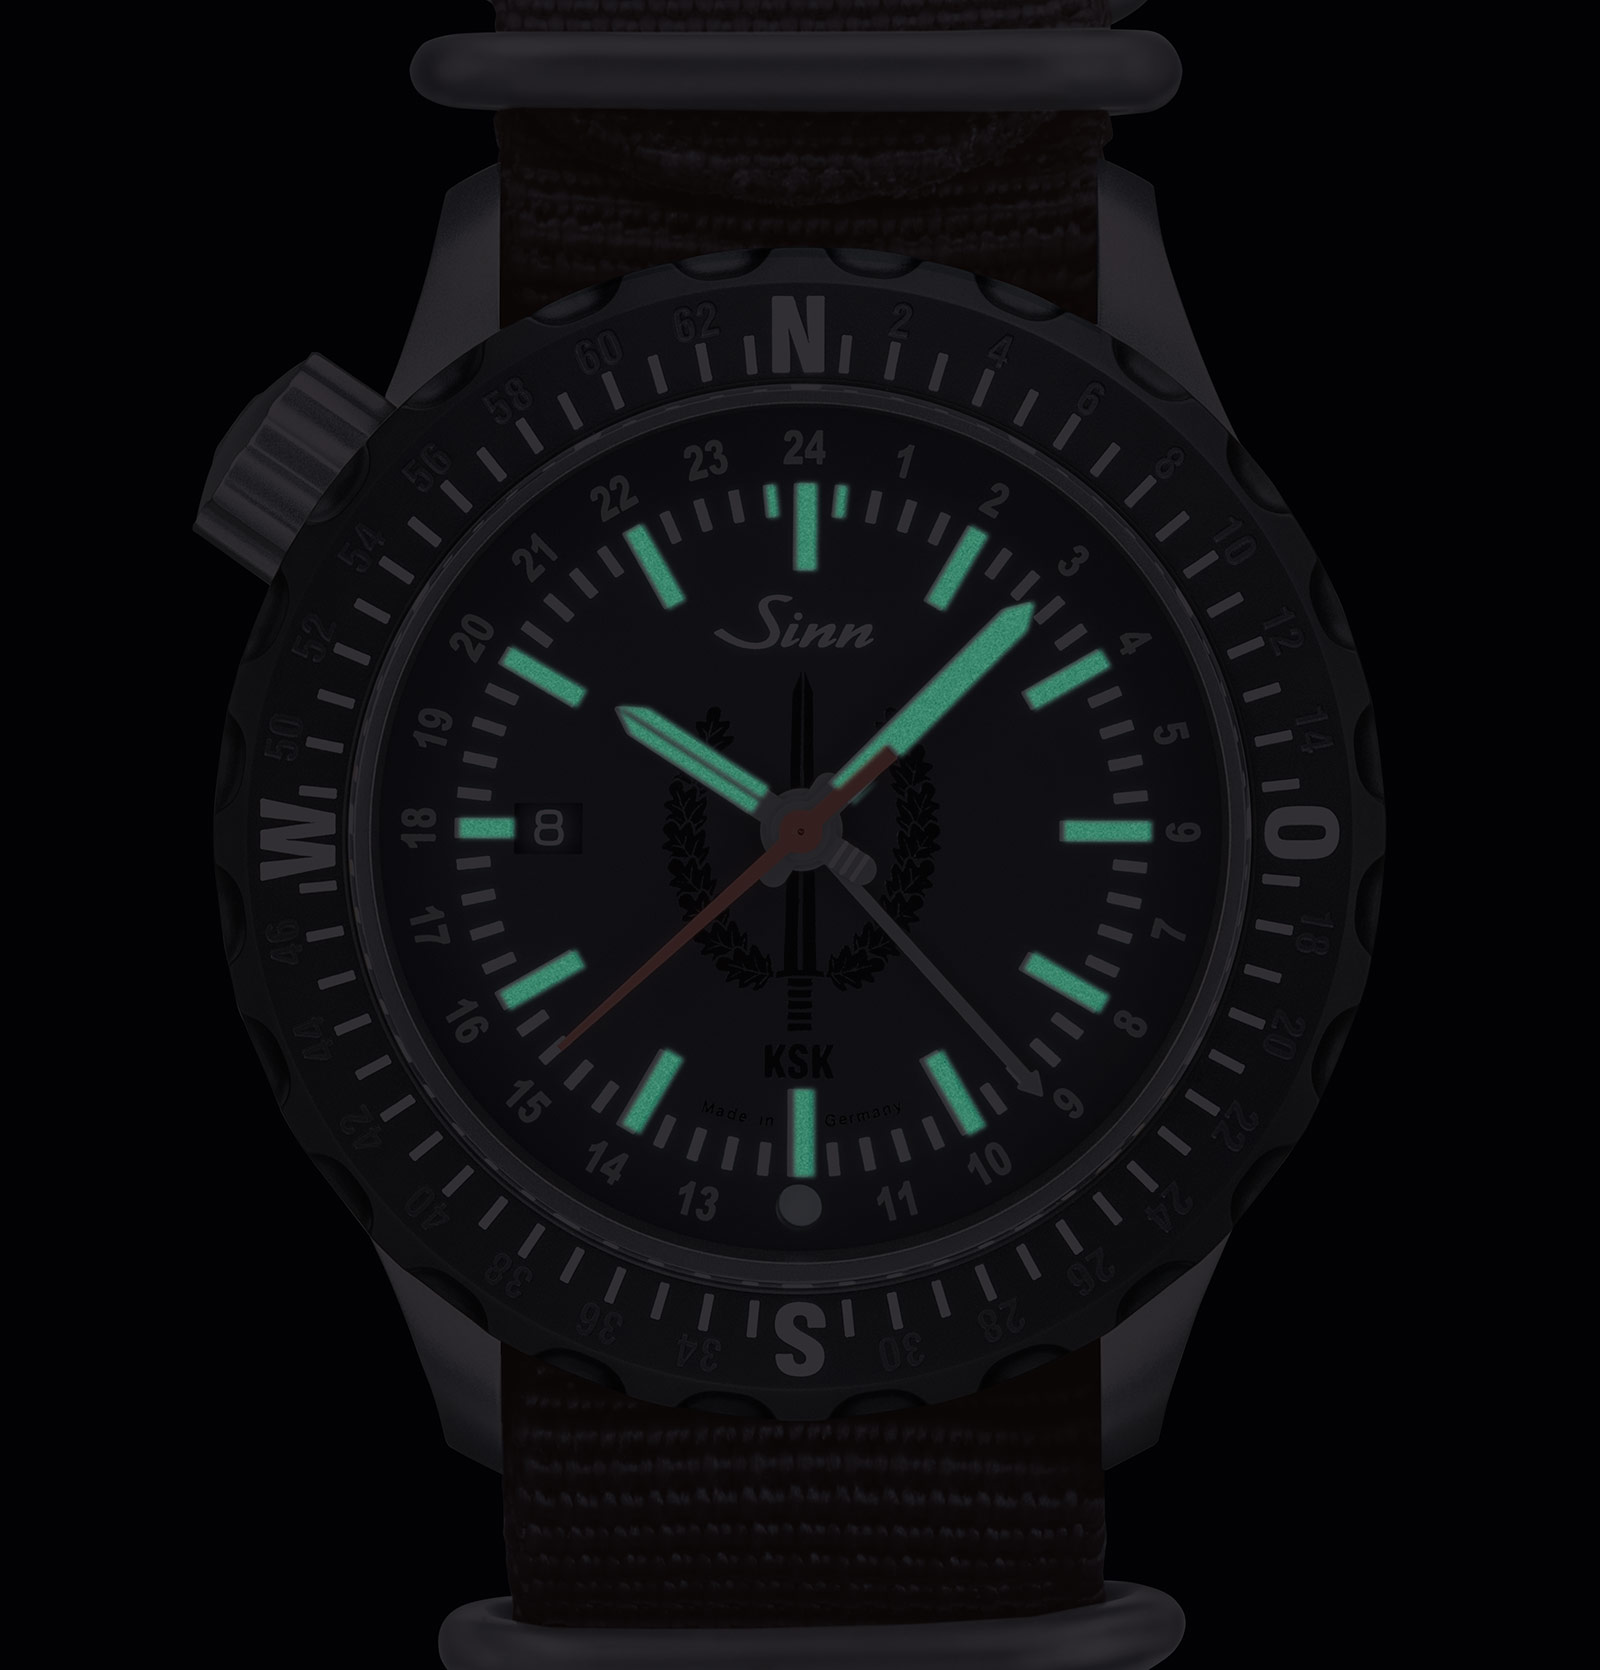 Sinn 212 KSK dive watch 4